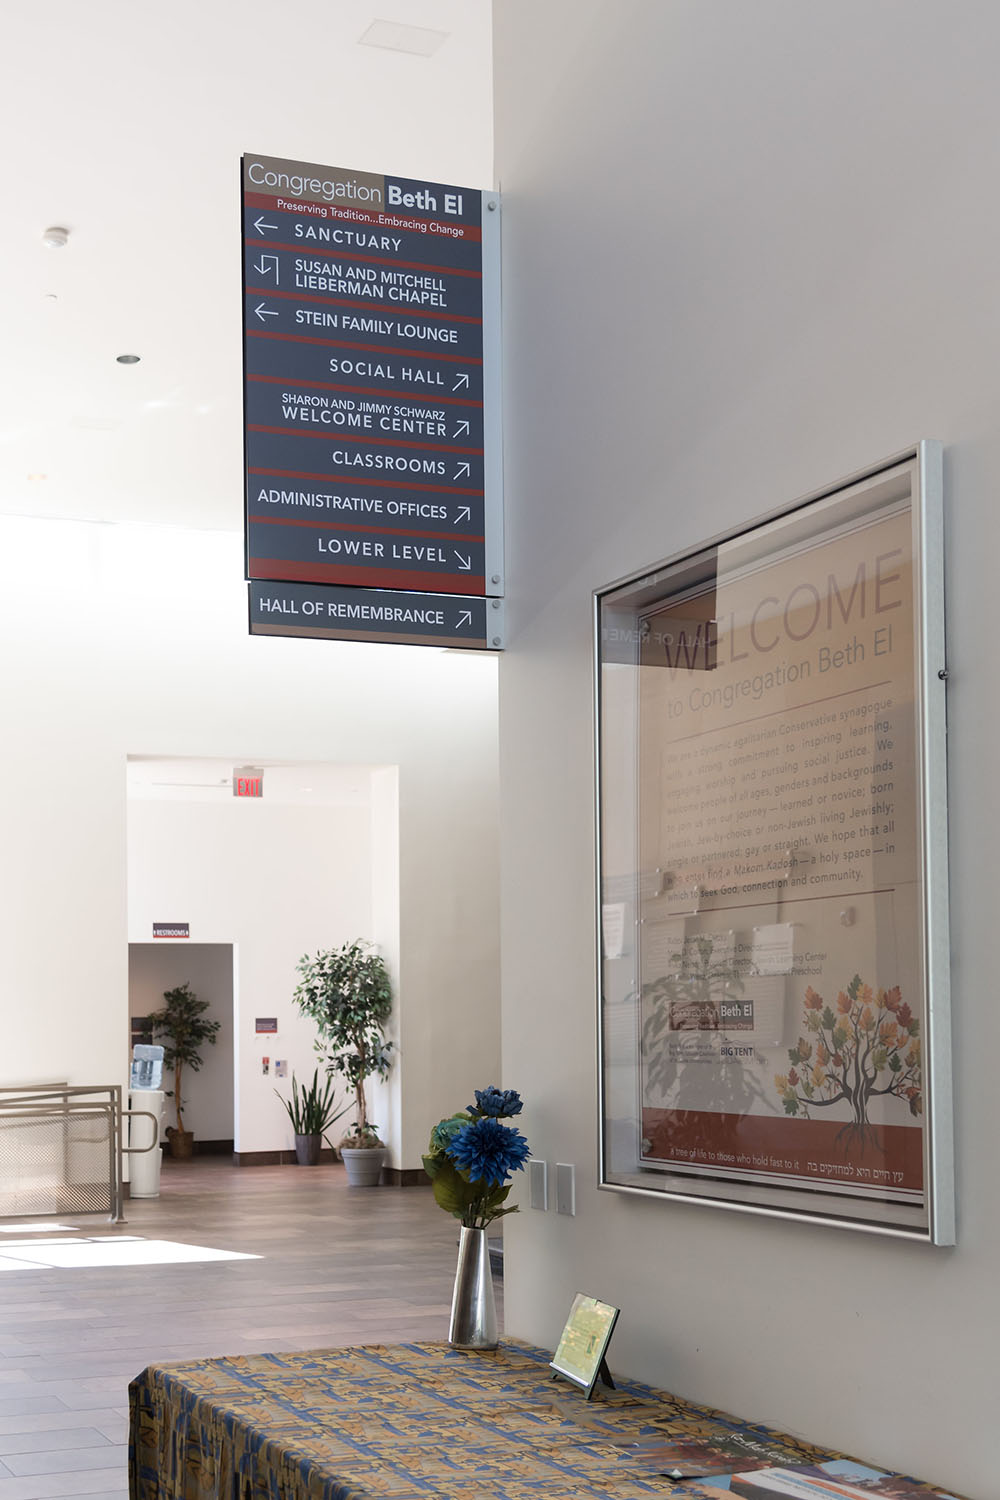 Main lobby way-finding signage. Welcome poster in the foreground; restroom signs in the background